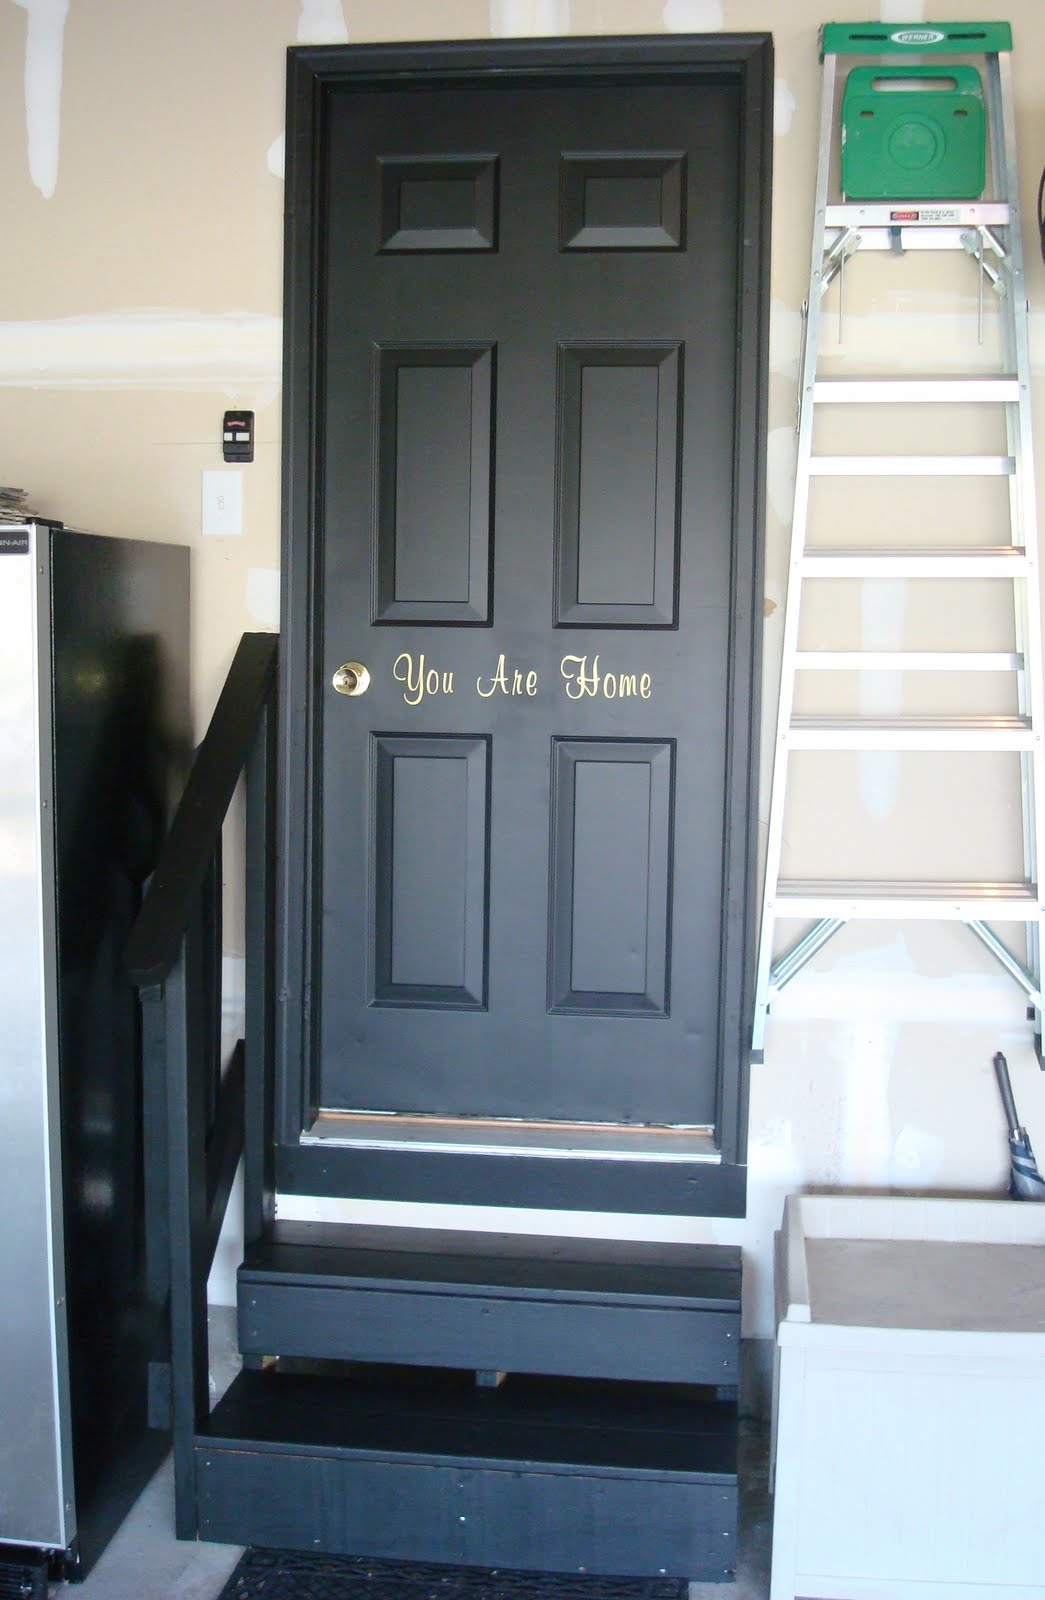 Le Meilleur Black Interior Doors In The Basement From Thrifty Decor Ce Mois Ci